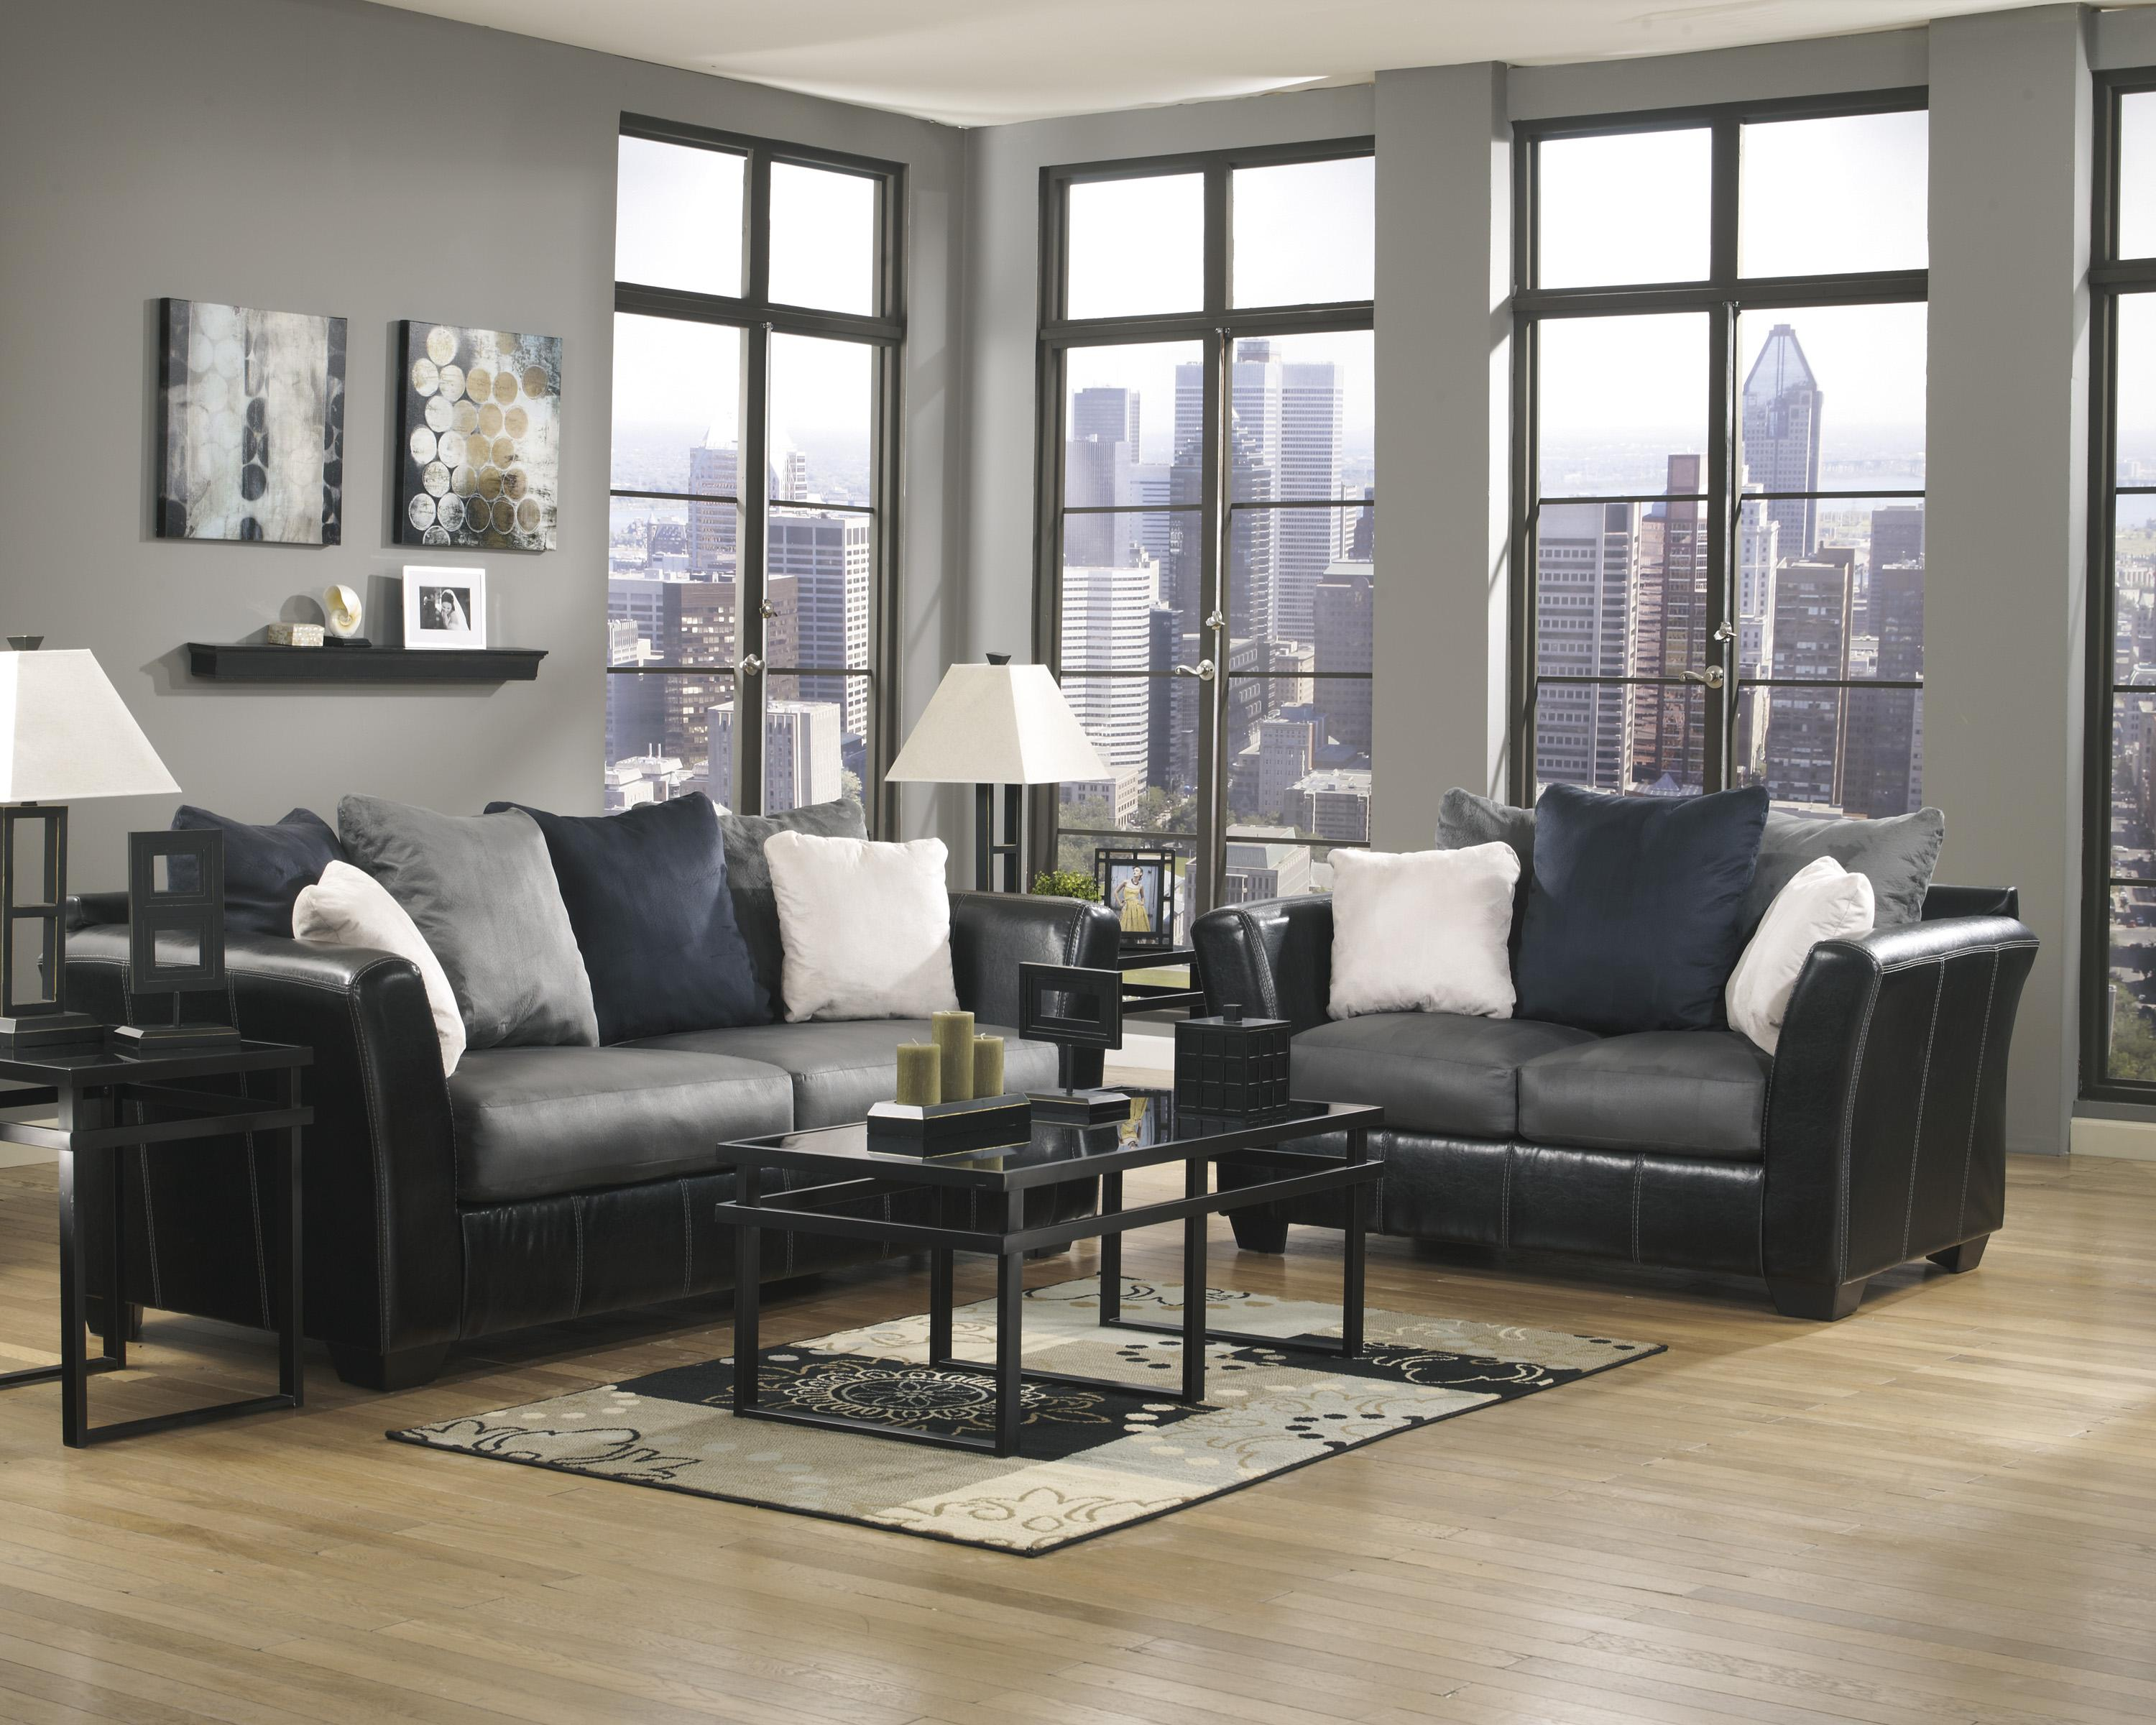 Ashley/Benchcraft Masoli - Cobblestone Stationary Living Room Group - Item Number: 14200 Living Room Group 1